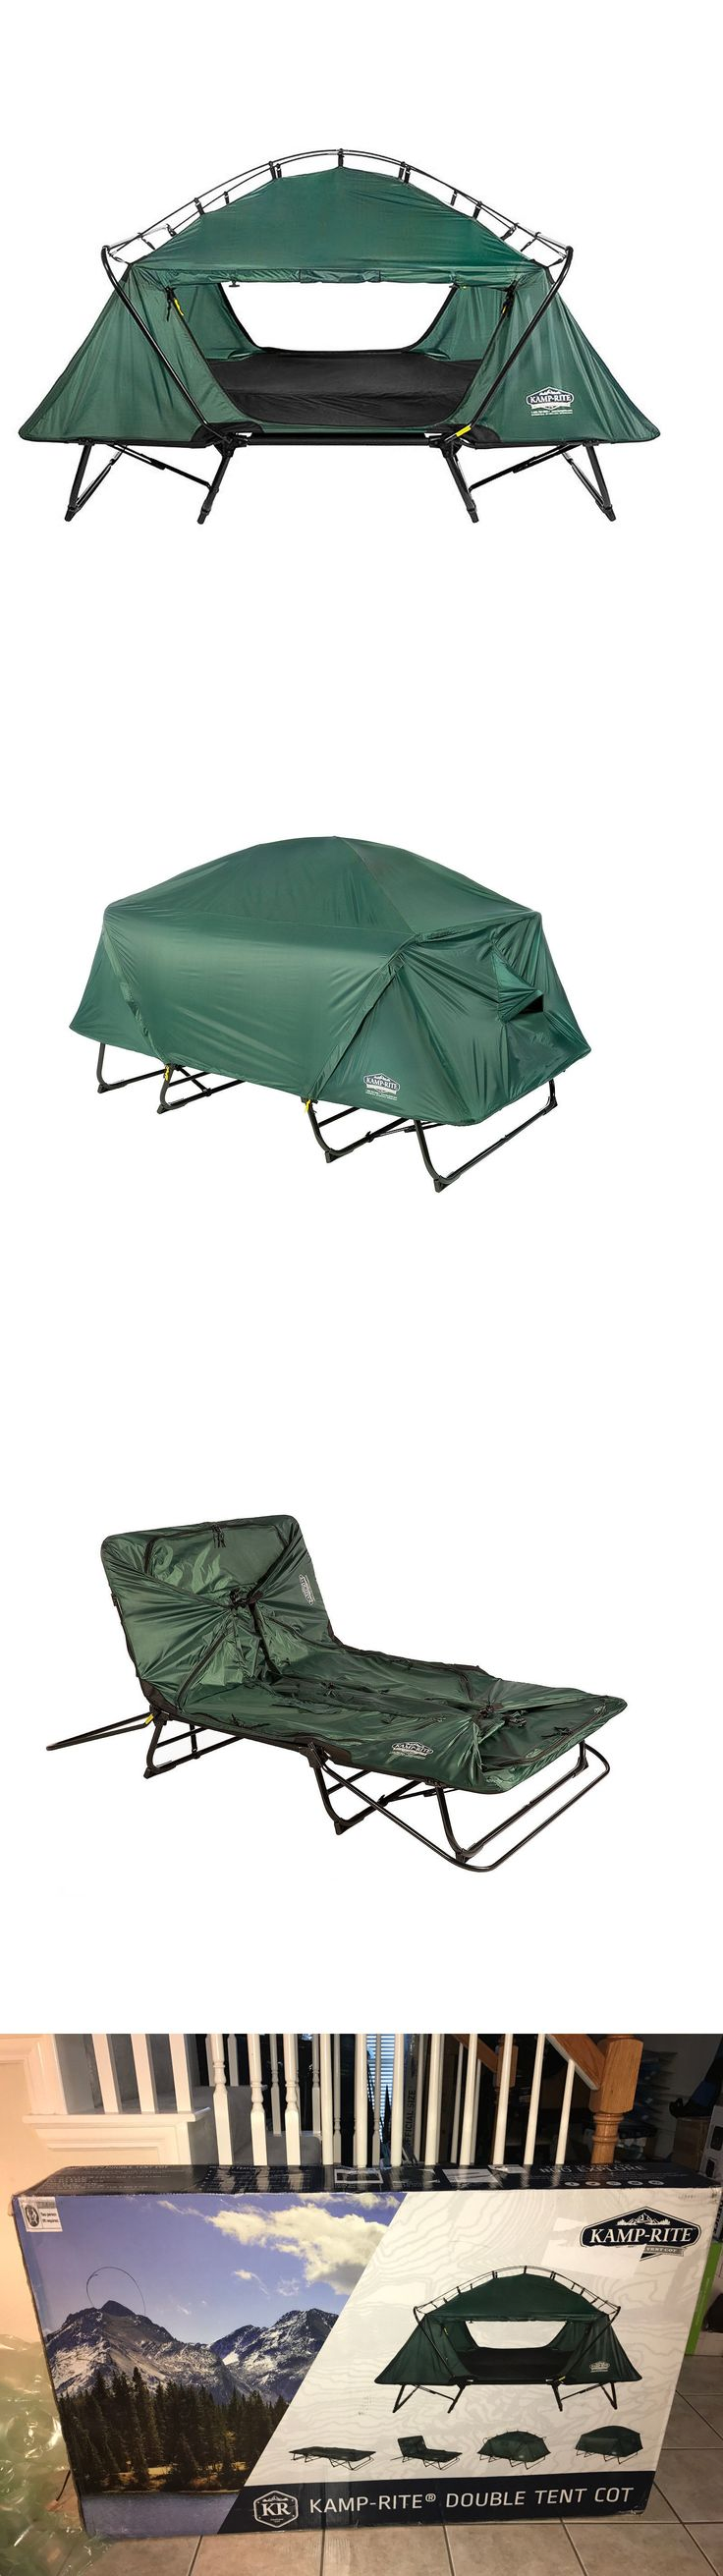 Cots 87099: New Kamp-Rite 2 Person Off The Ground Double Tent Cot Camping Outdoor Hiking -> BUY IT NOW ONLY: $185 on eBay!